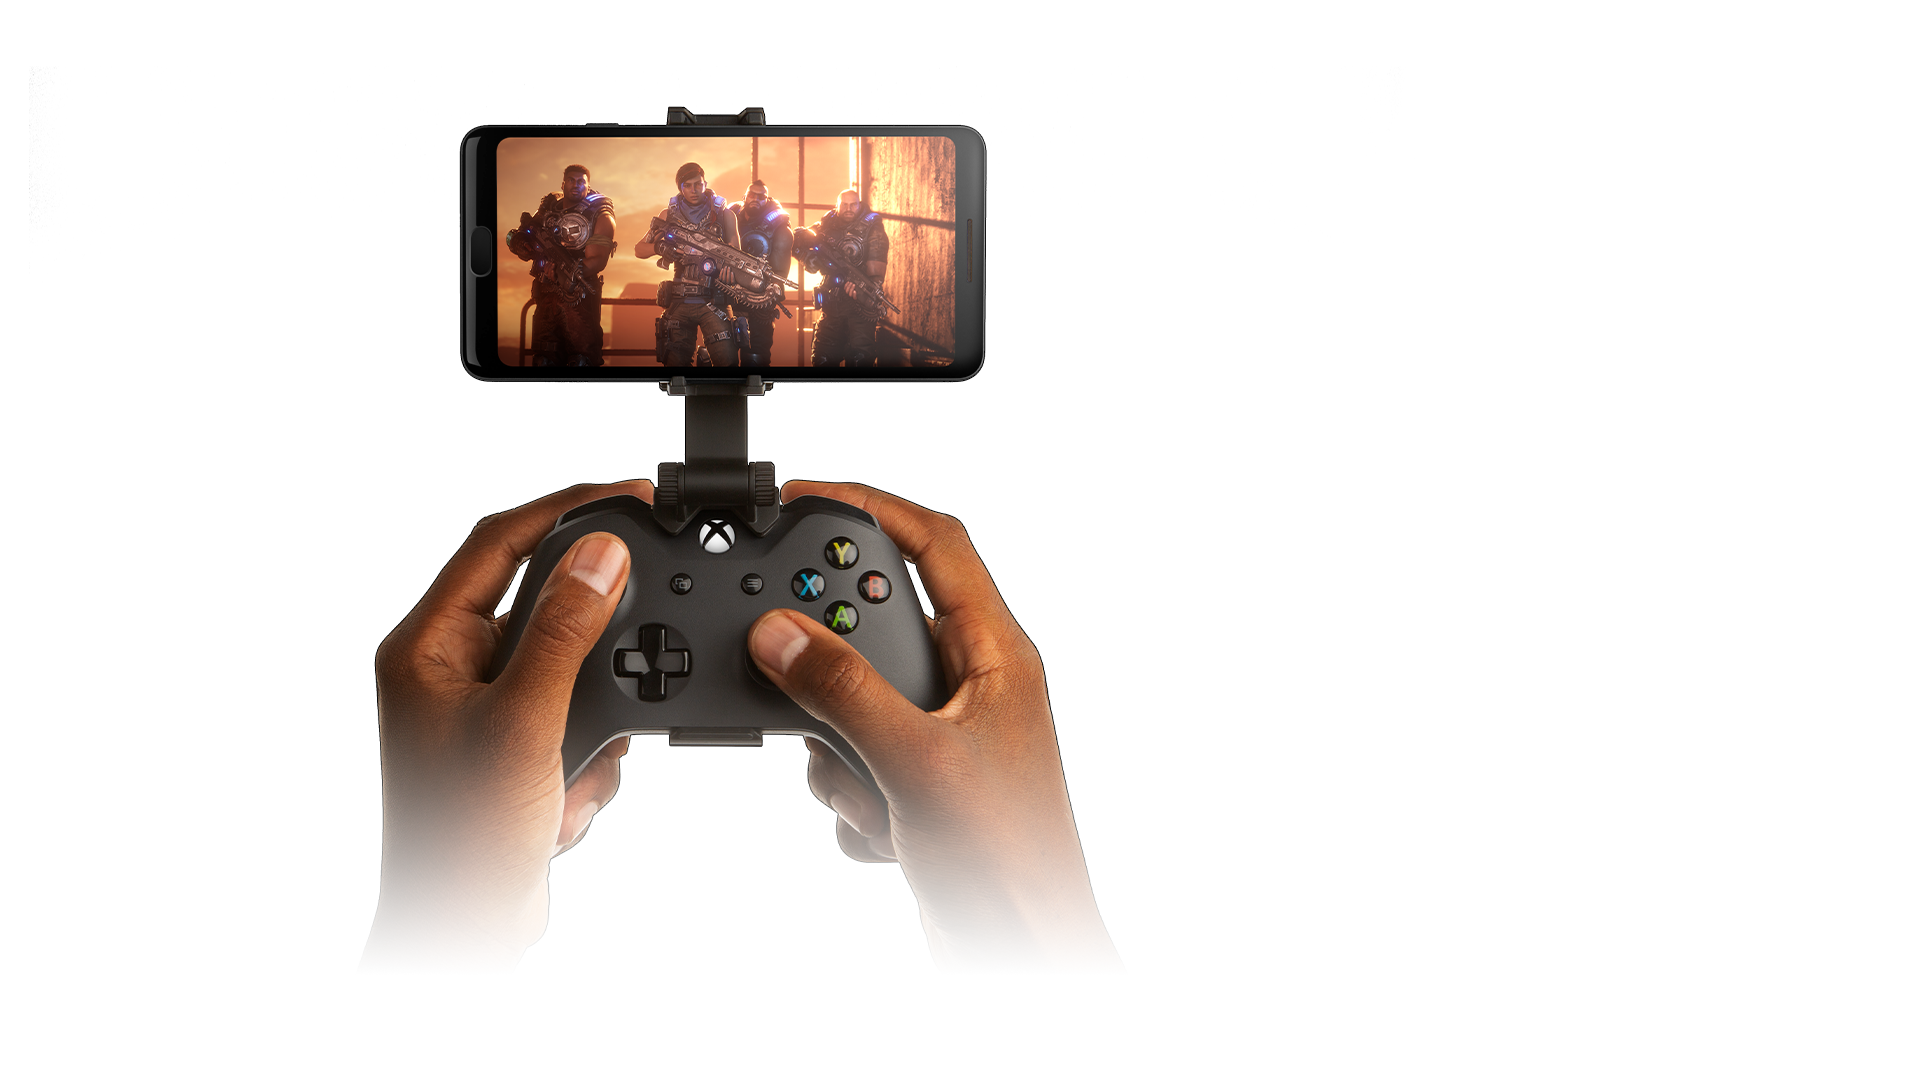 Player holding a controller with a smartphone clipped on, phone screen shows Gears 5 gameplay